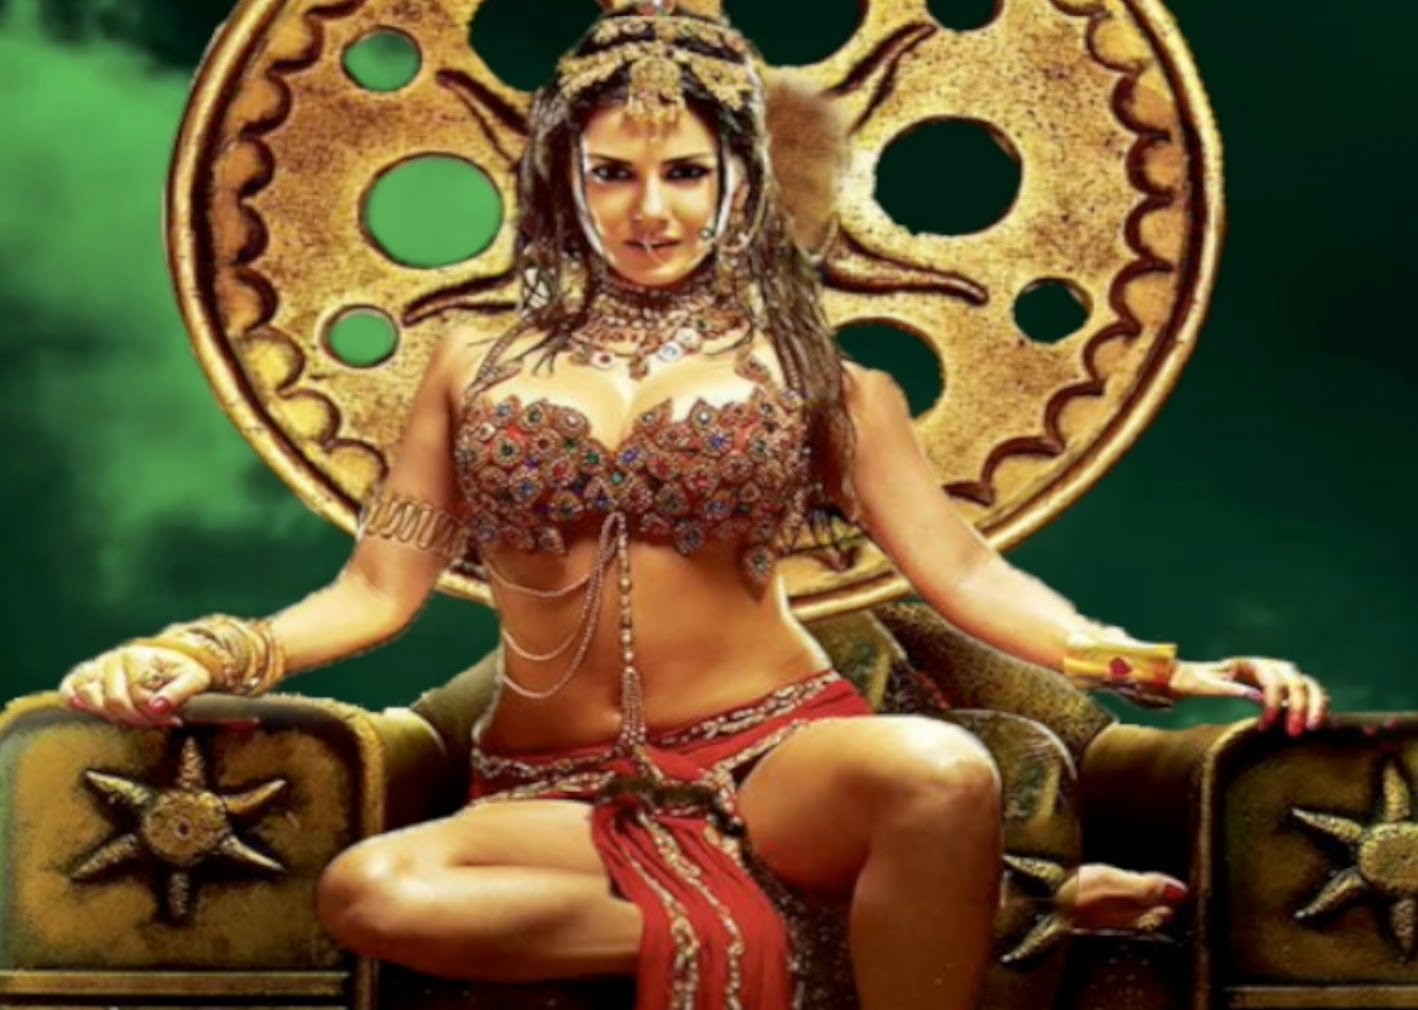 Sunny leone xxx video neuer Film leela 2015